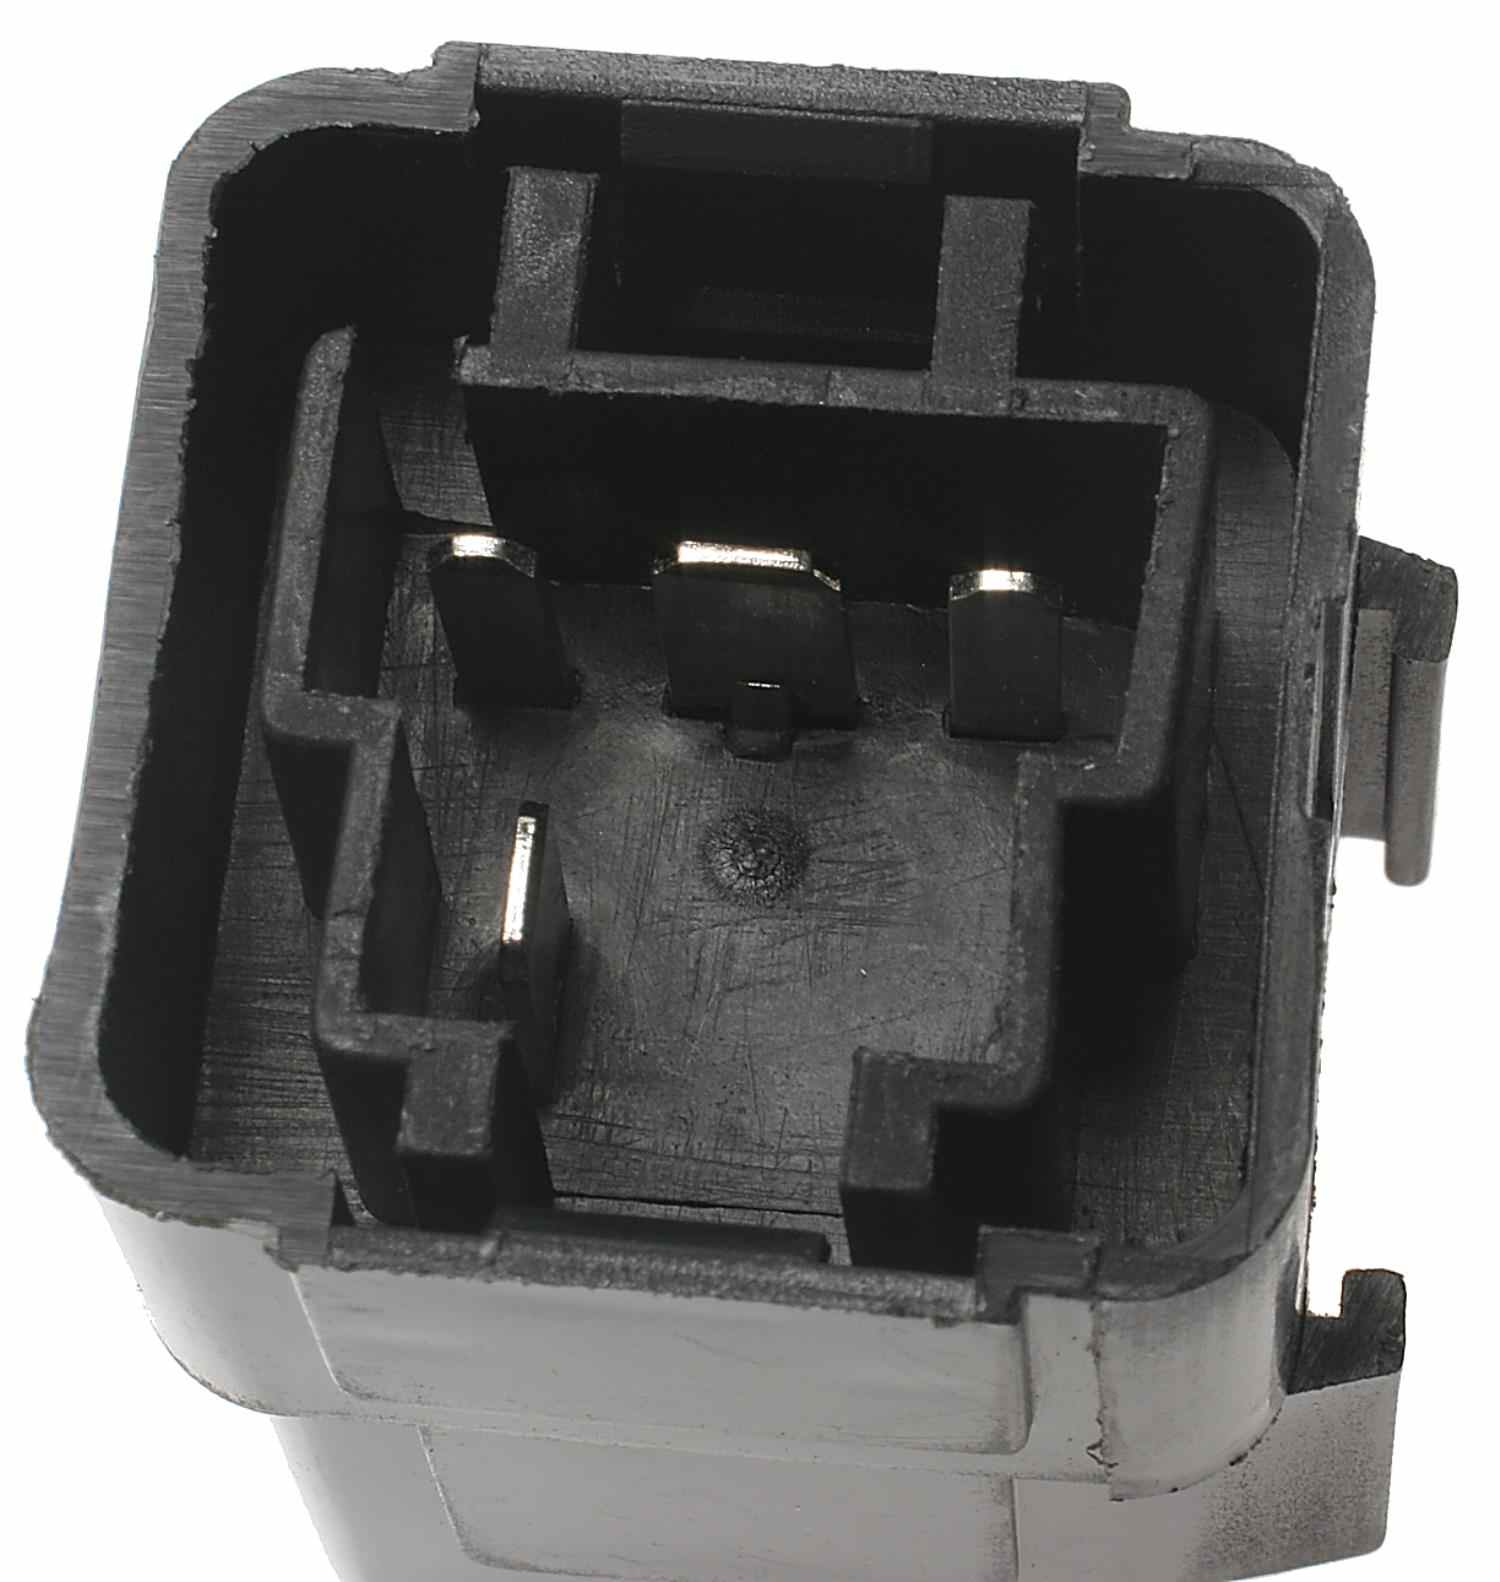 ACDELCO PROFESSIONAL - Speed Up Solenoid Relay - DCC 15-81090